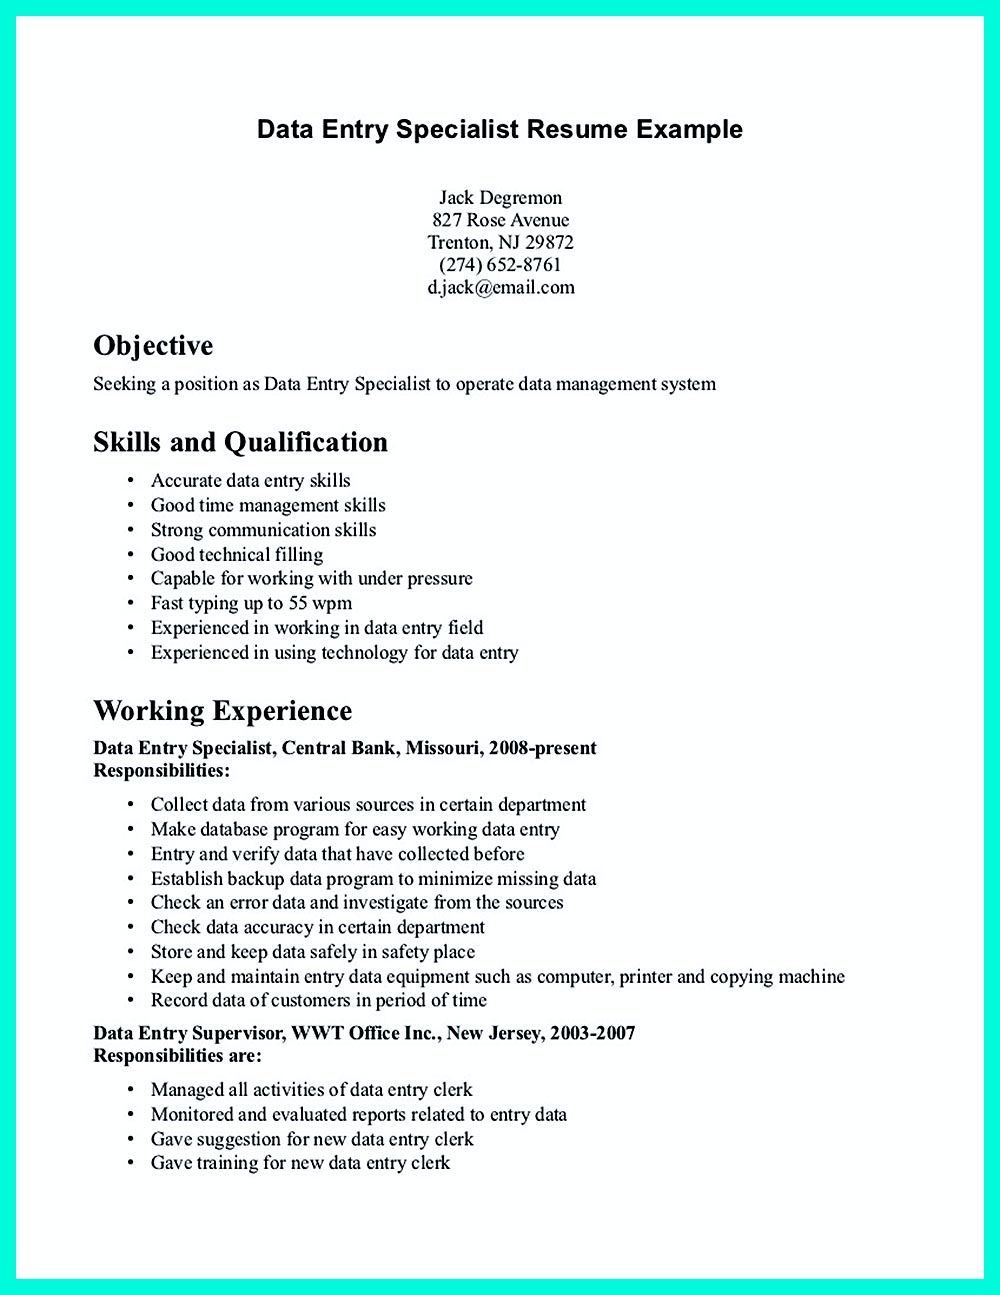 Marketing Specialist Resume 10 Astonishingly Easy Ways To Make Money Online  Data Entry And